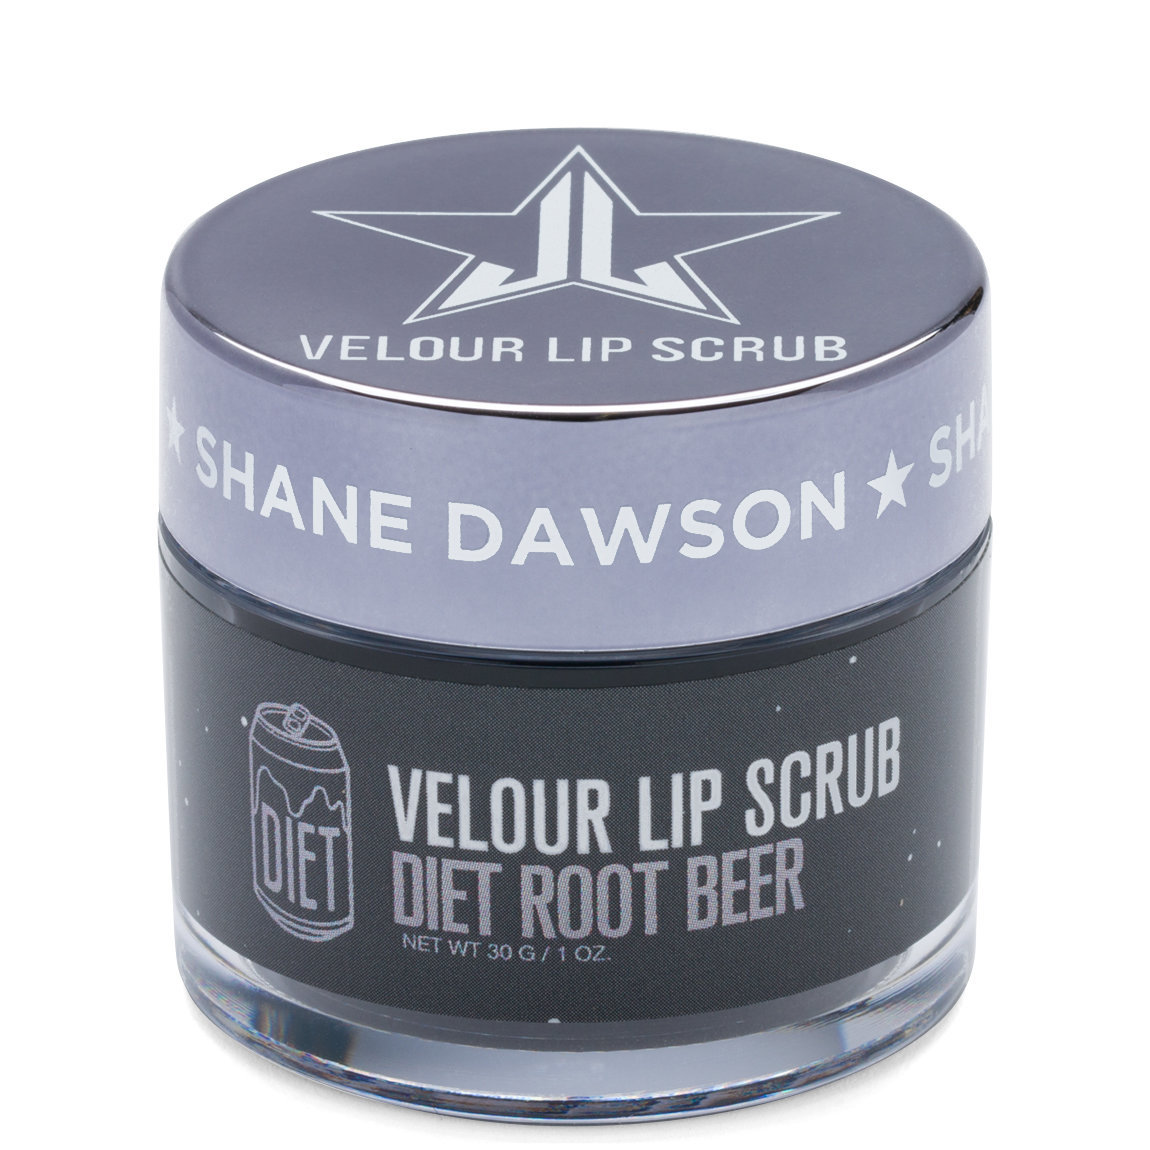 Jeffree Star Cosmetics Velour Lip Scrub Diet Rootbeer alternative view 1.